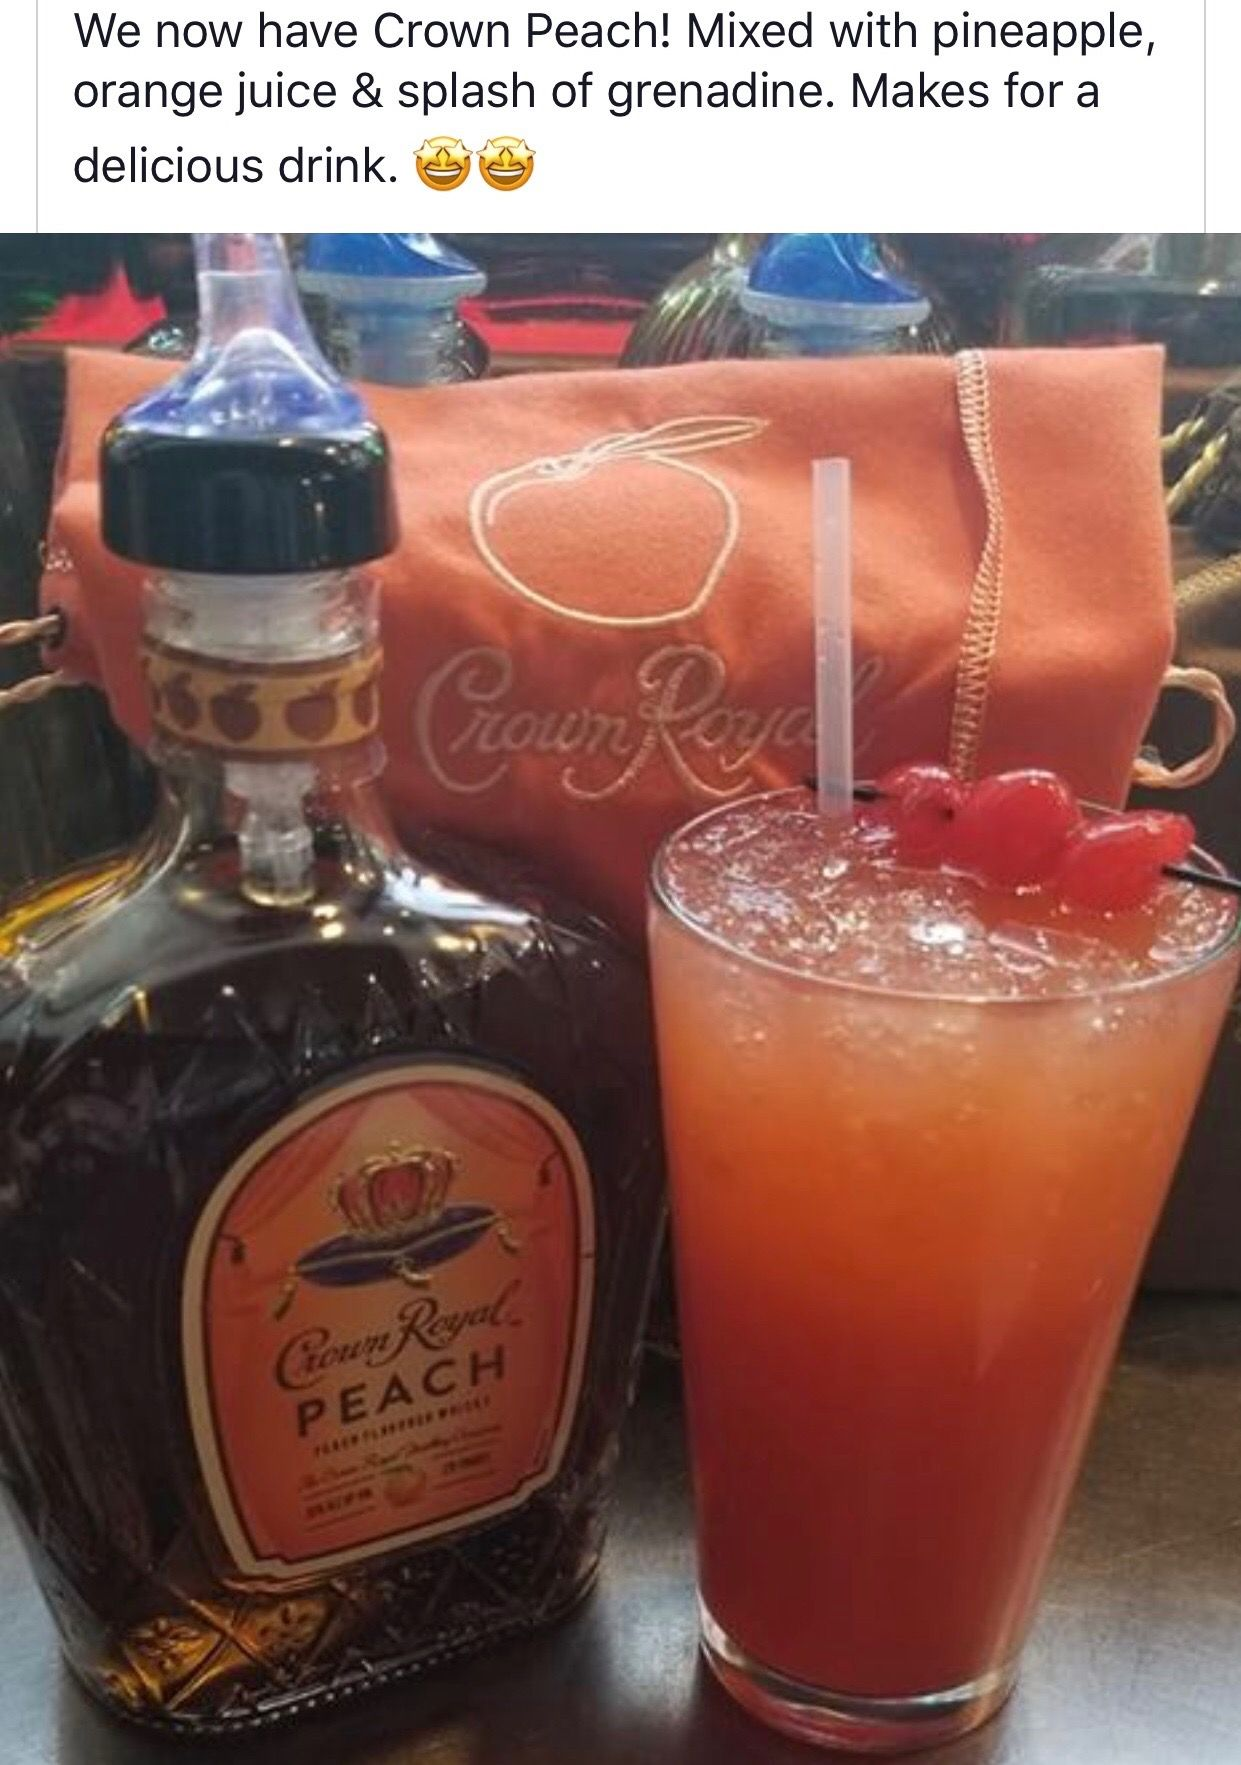 Pin By Tina Louk On Drinks Mixed Drinks Alcohol Yummy Drinks Boozy Drinks